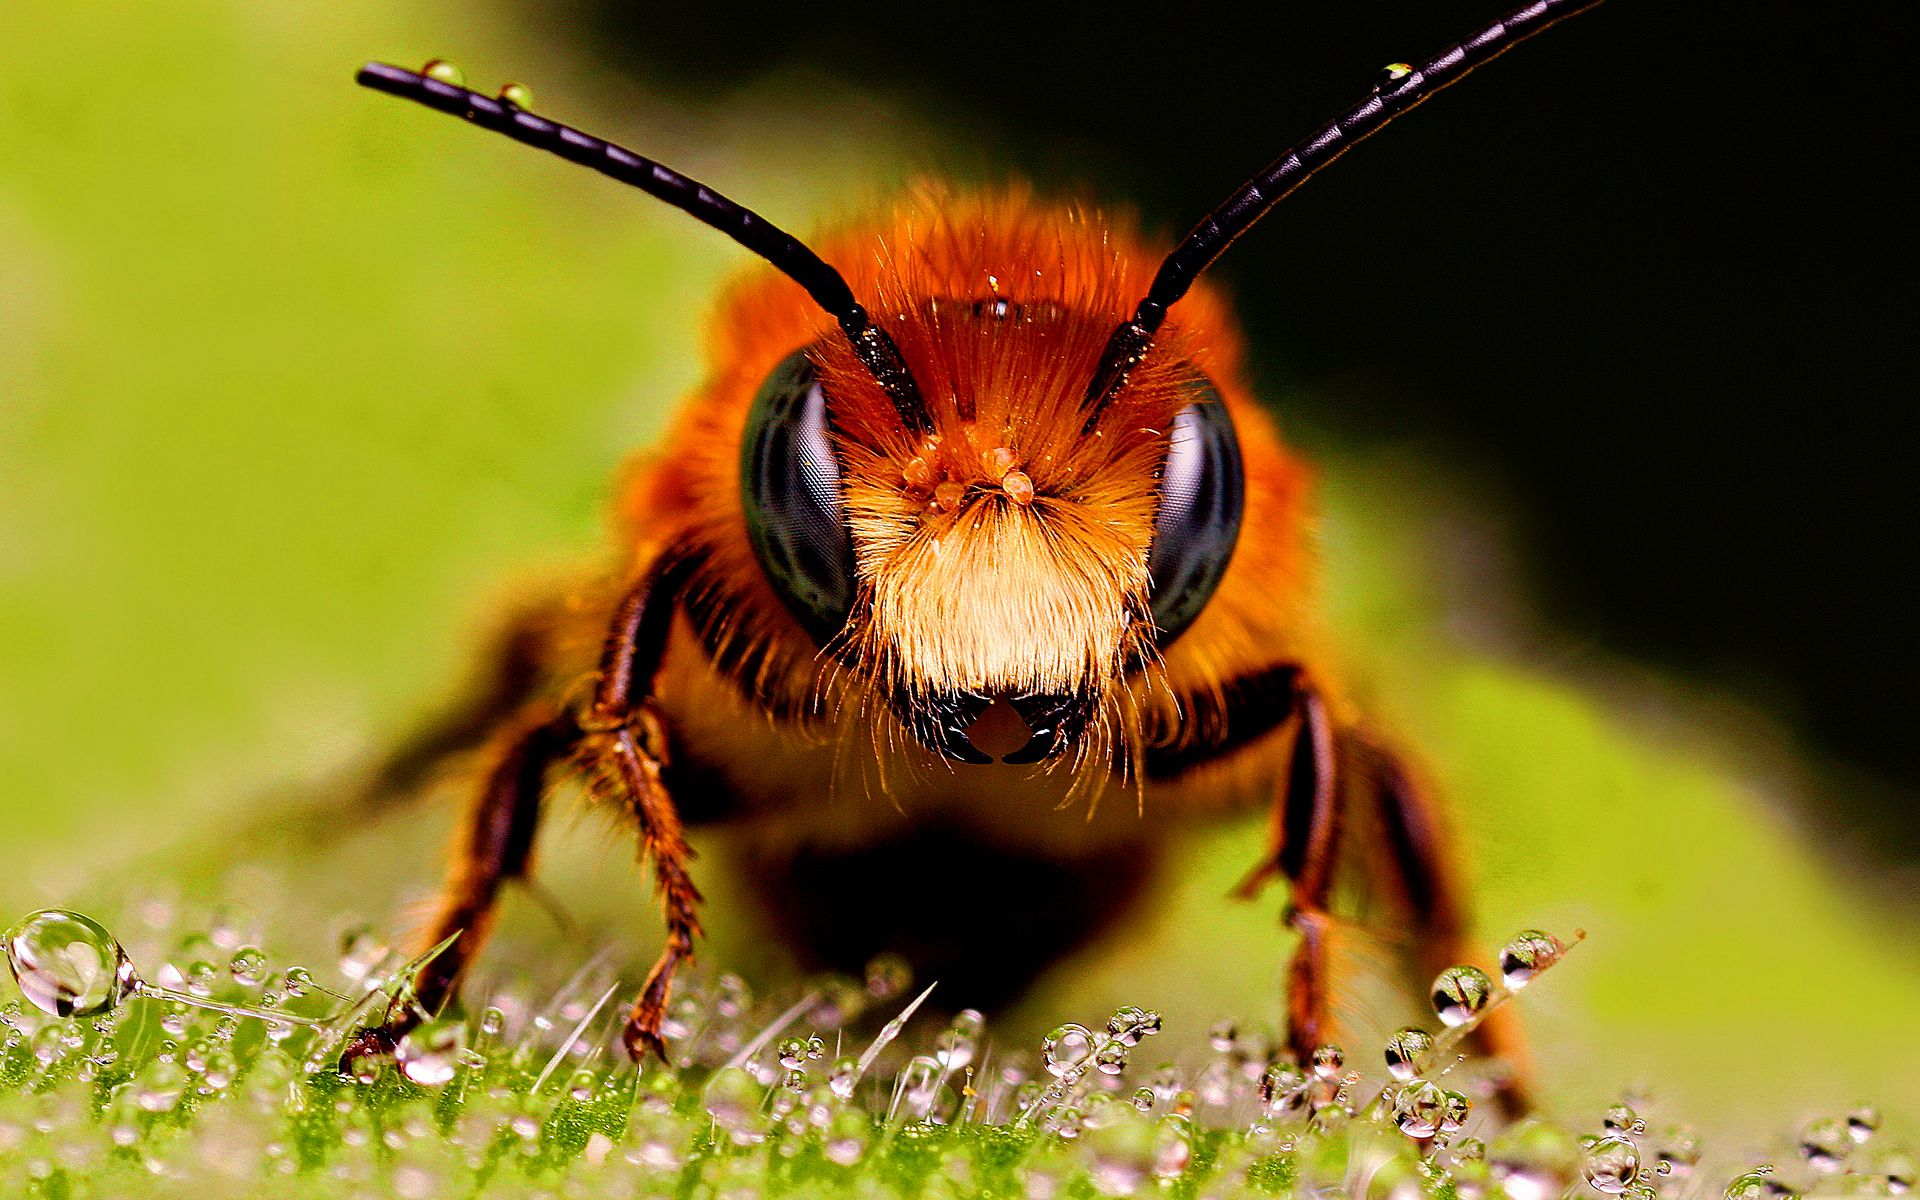 Bee Wallpapers Hd Hd Wallpapers Bee, Bee images, Insects